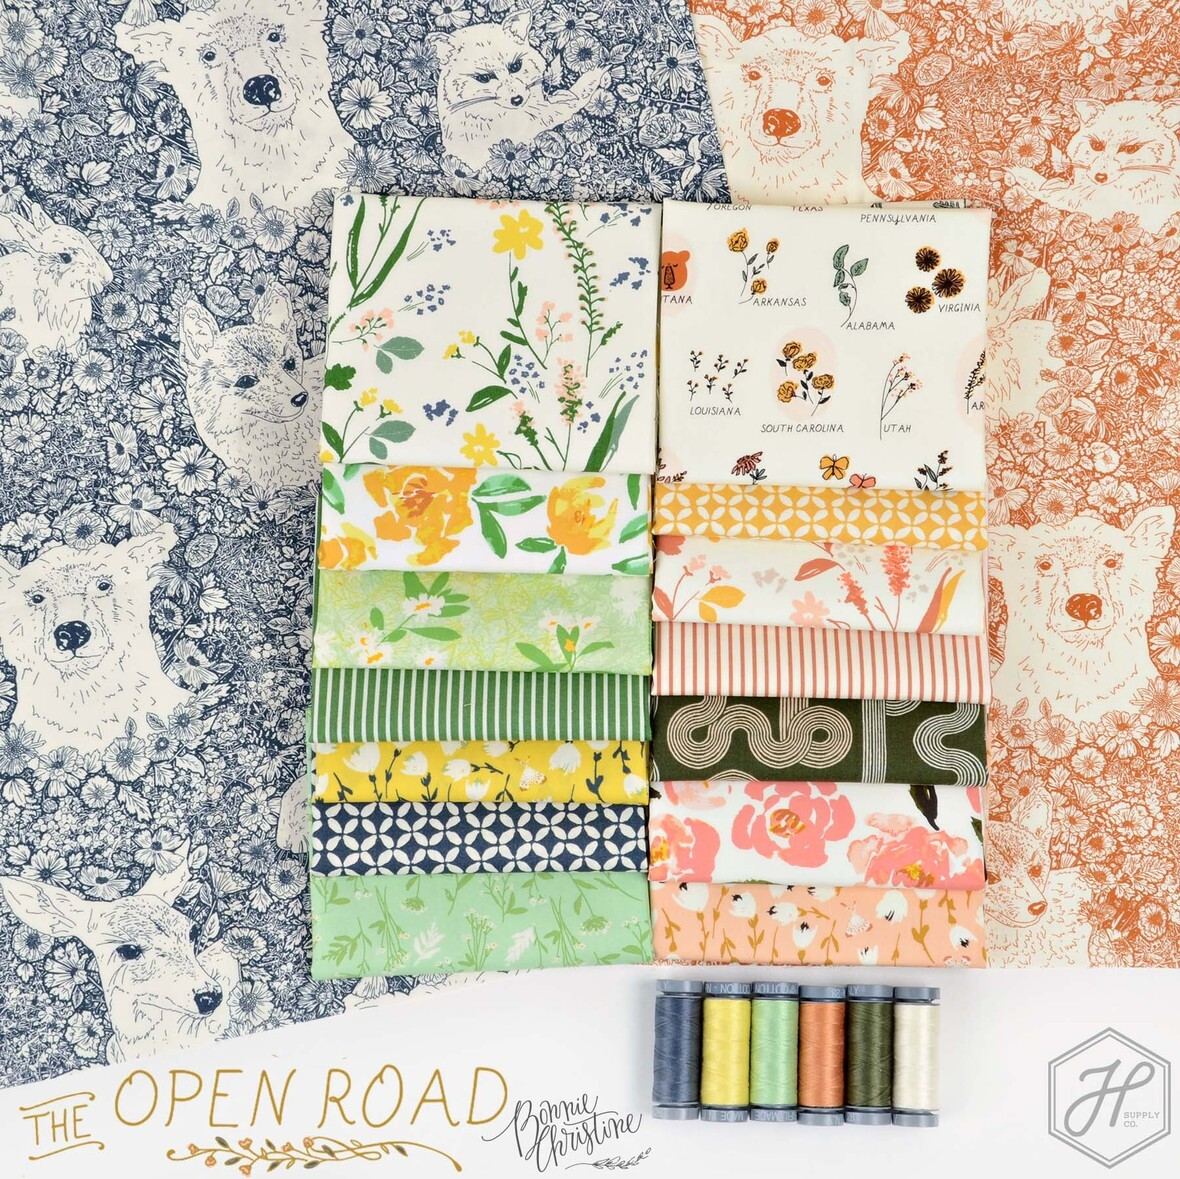 The Open Road Fabric Poster Bonnie Christine at Hawthorne Supply Co